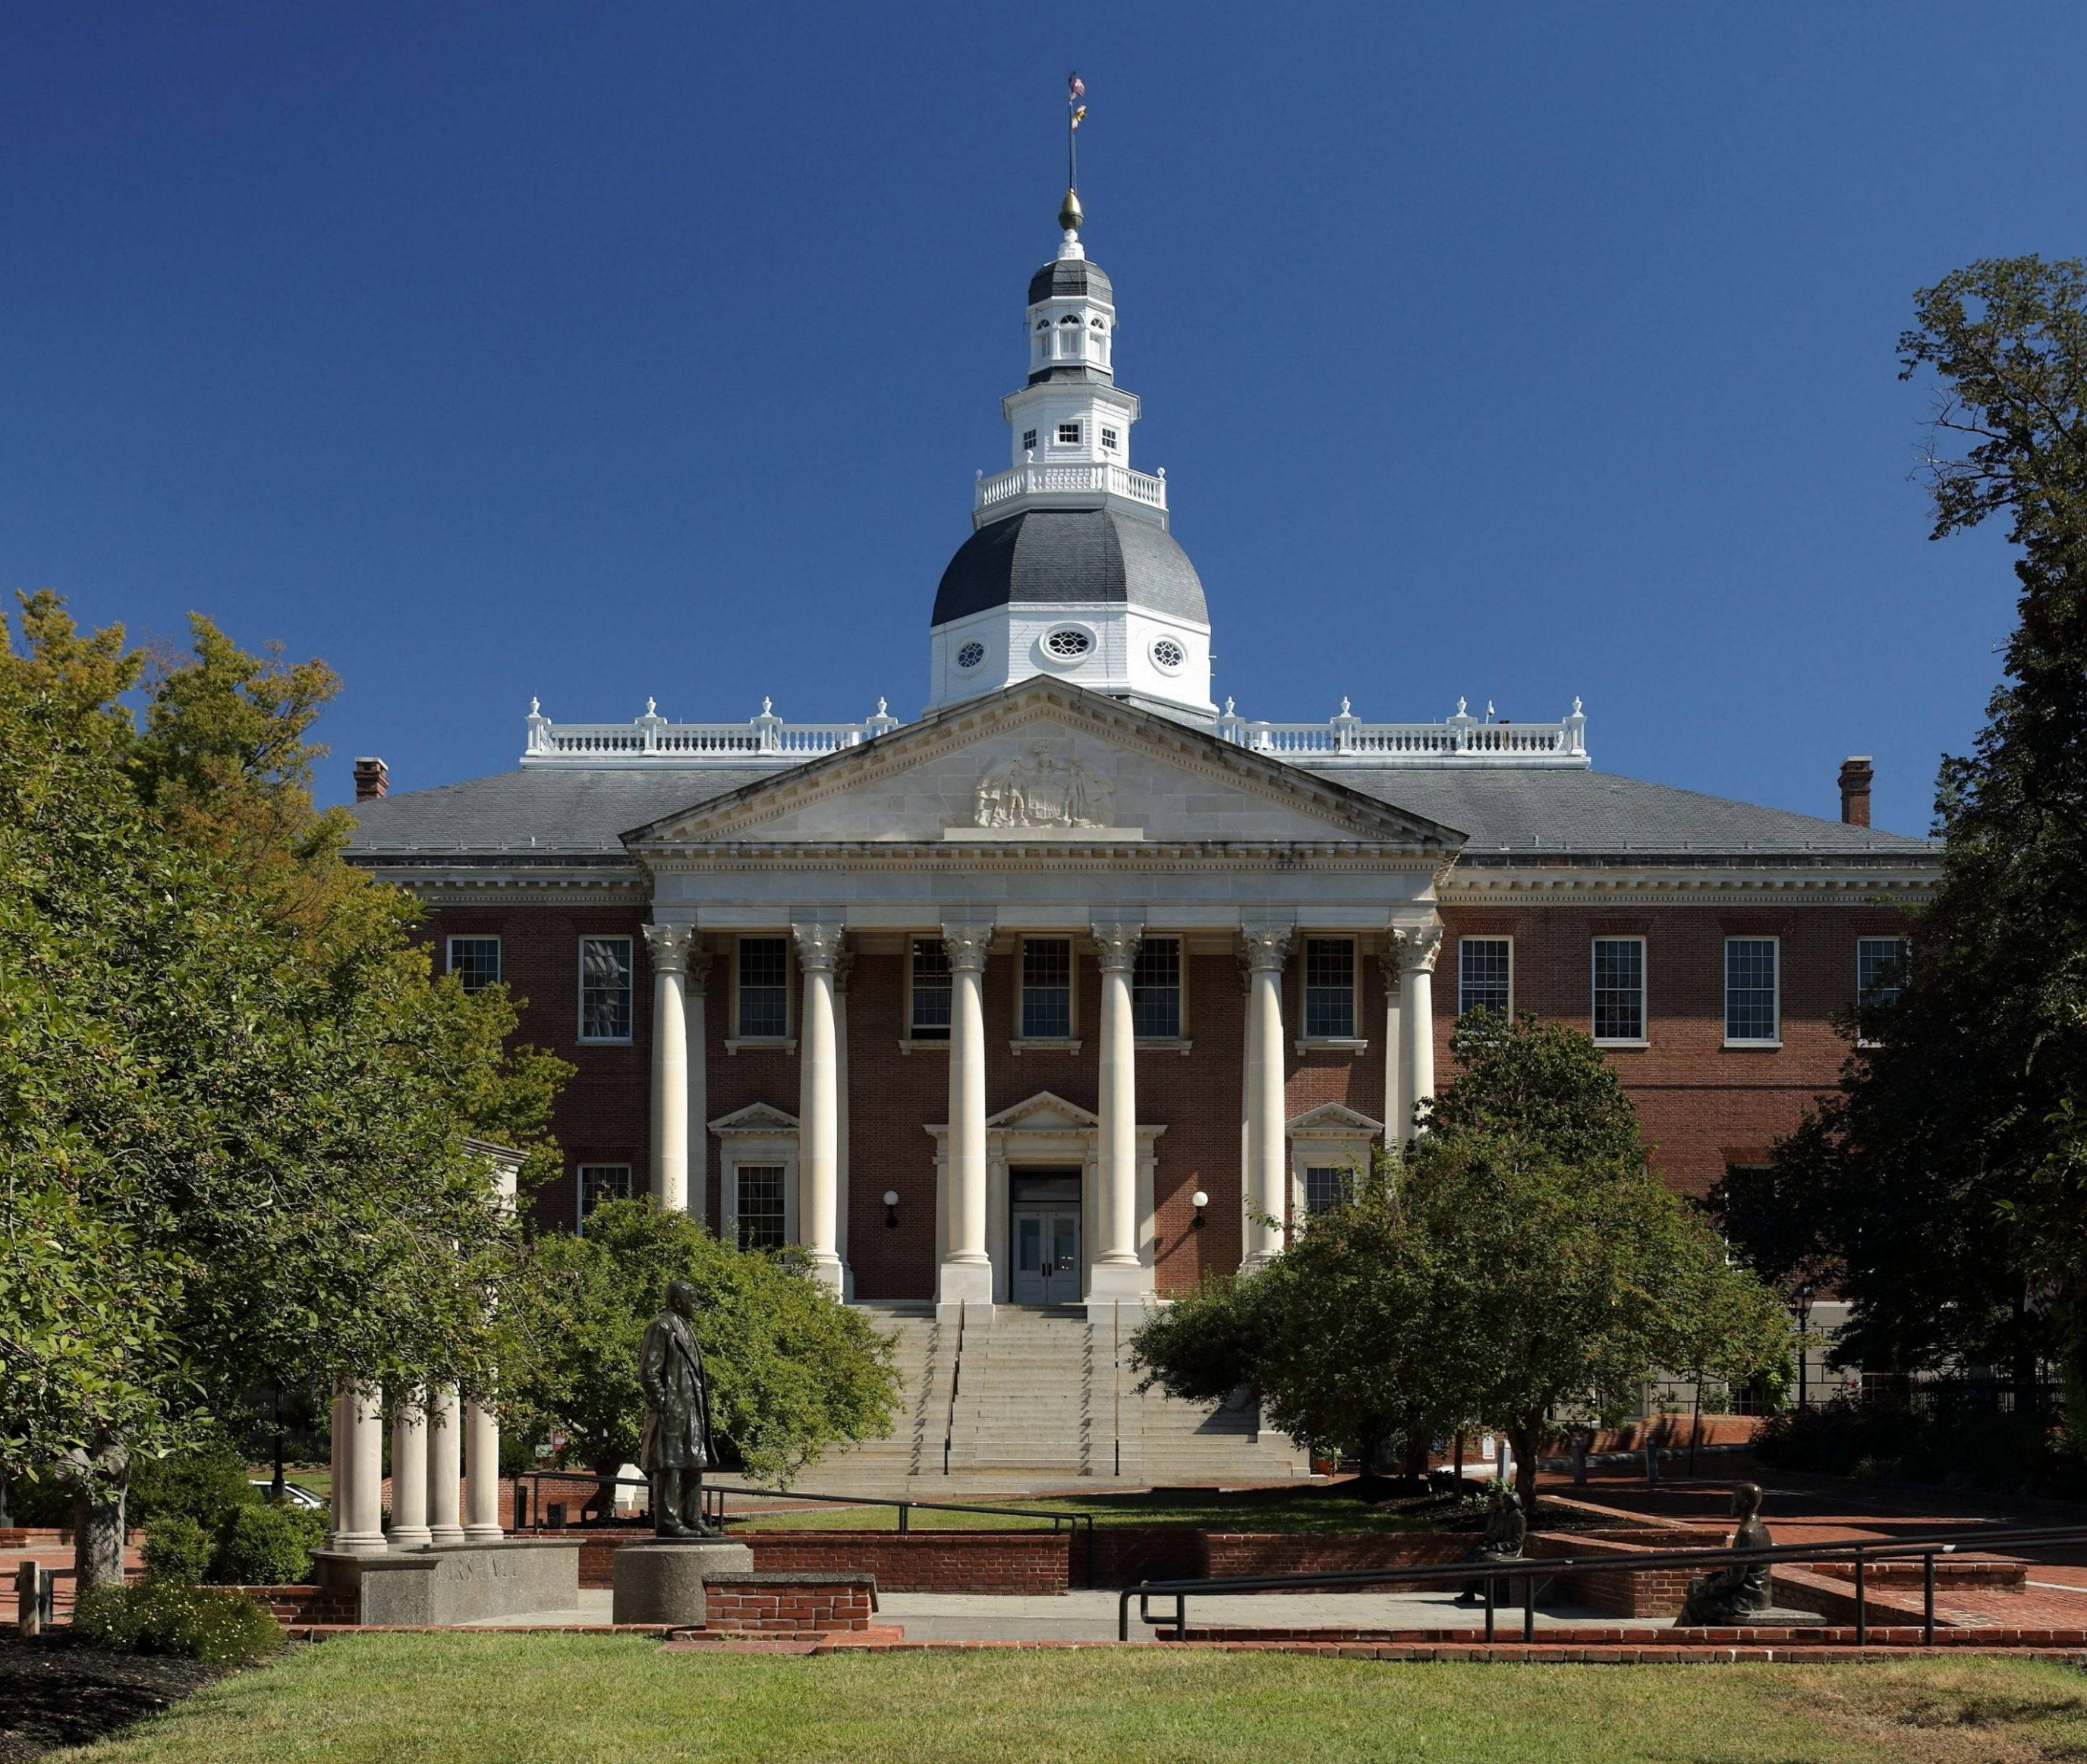 state_house_image_wikimedia_commons.jpg